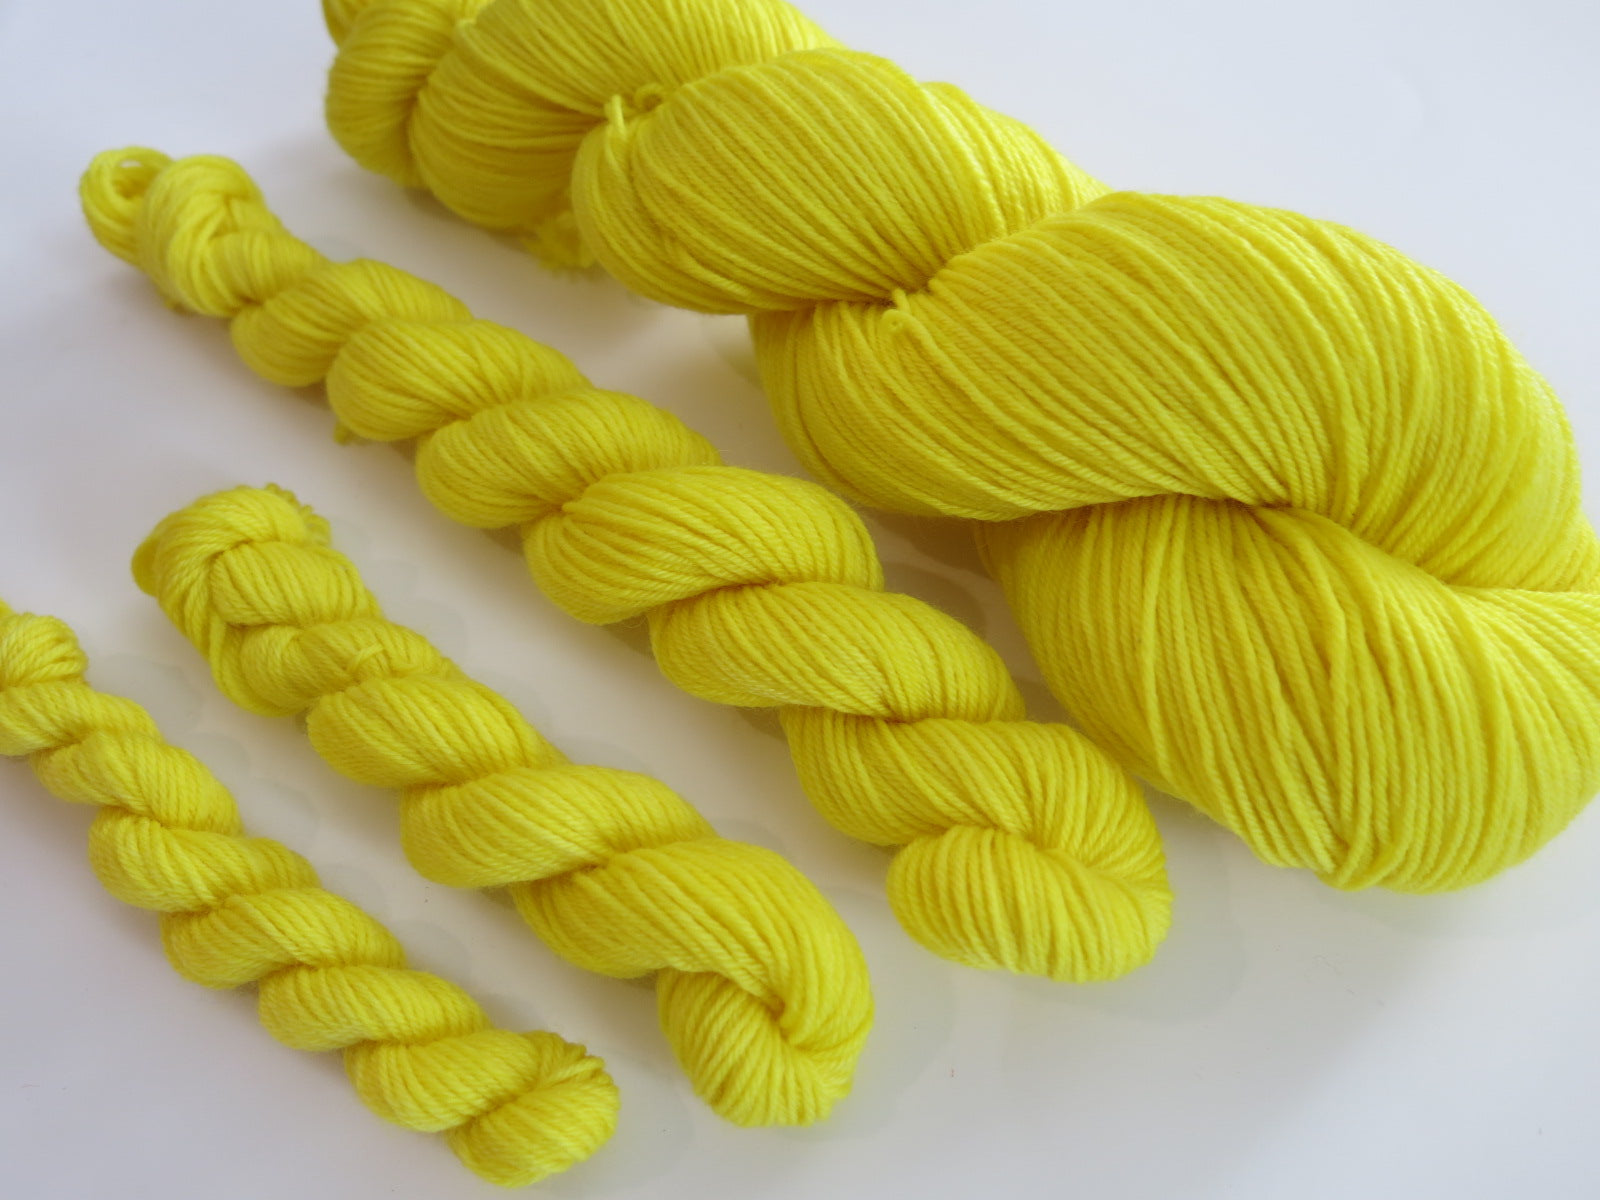 hand dyed yellow mini skeins for sock knitting and crafts